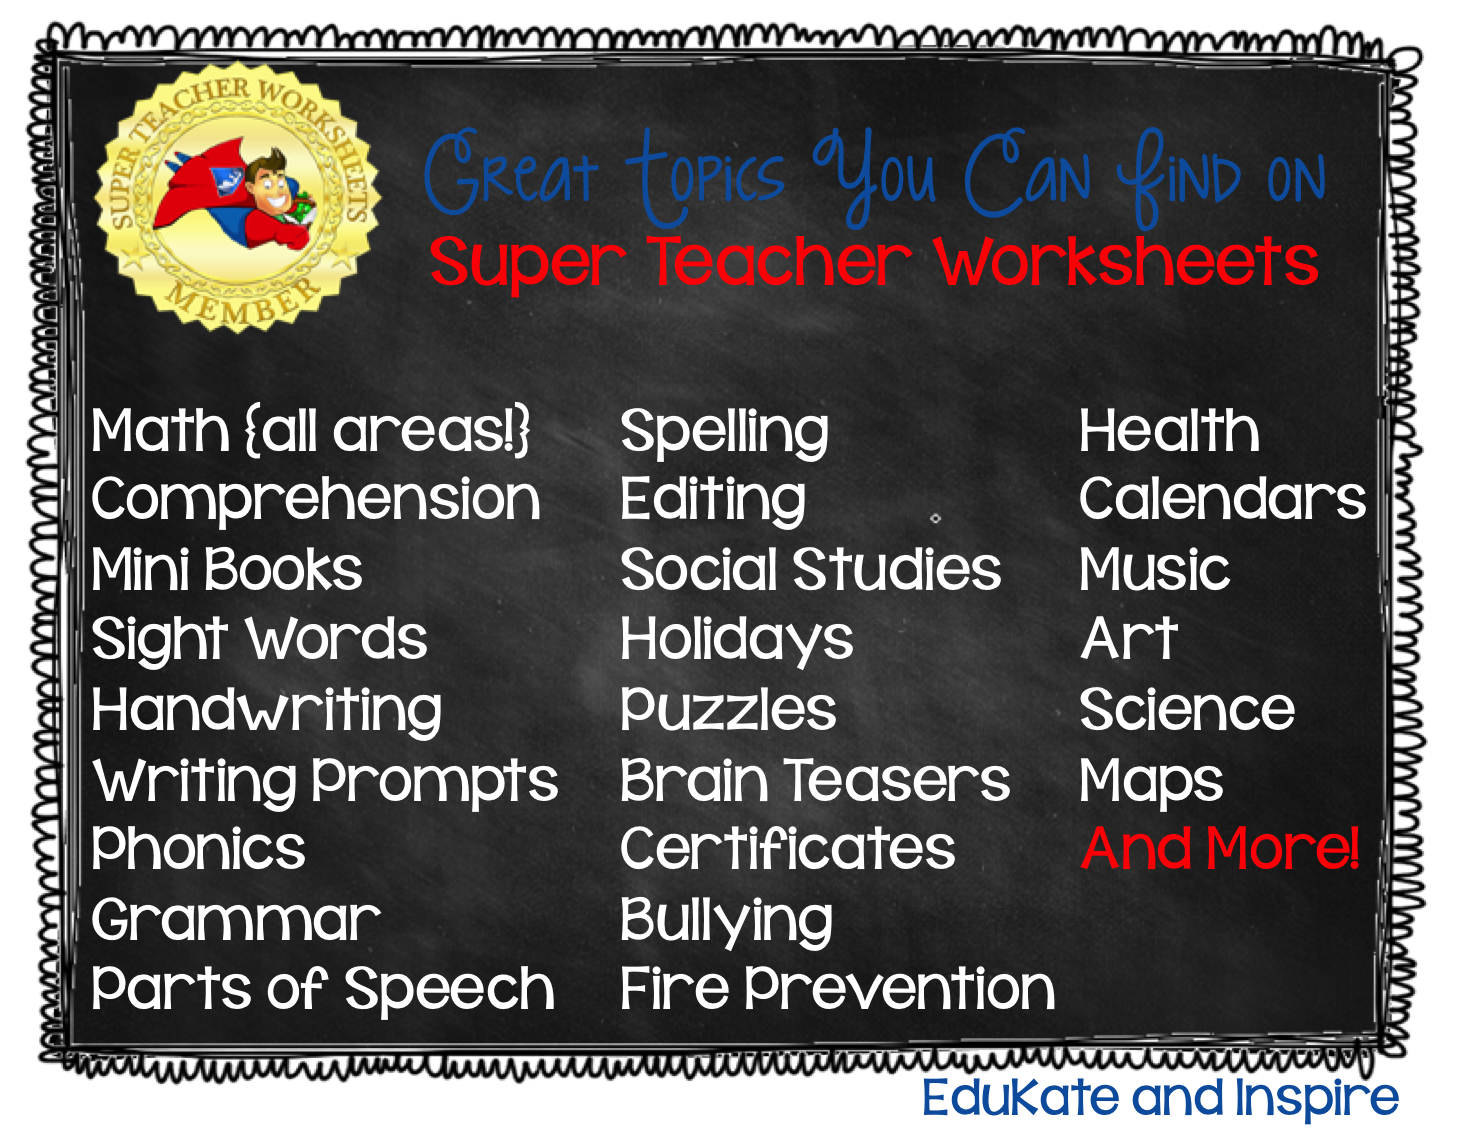 Super Teacher Worksheets: A Review and Giveaway! - EduKate and Inspire